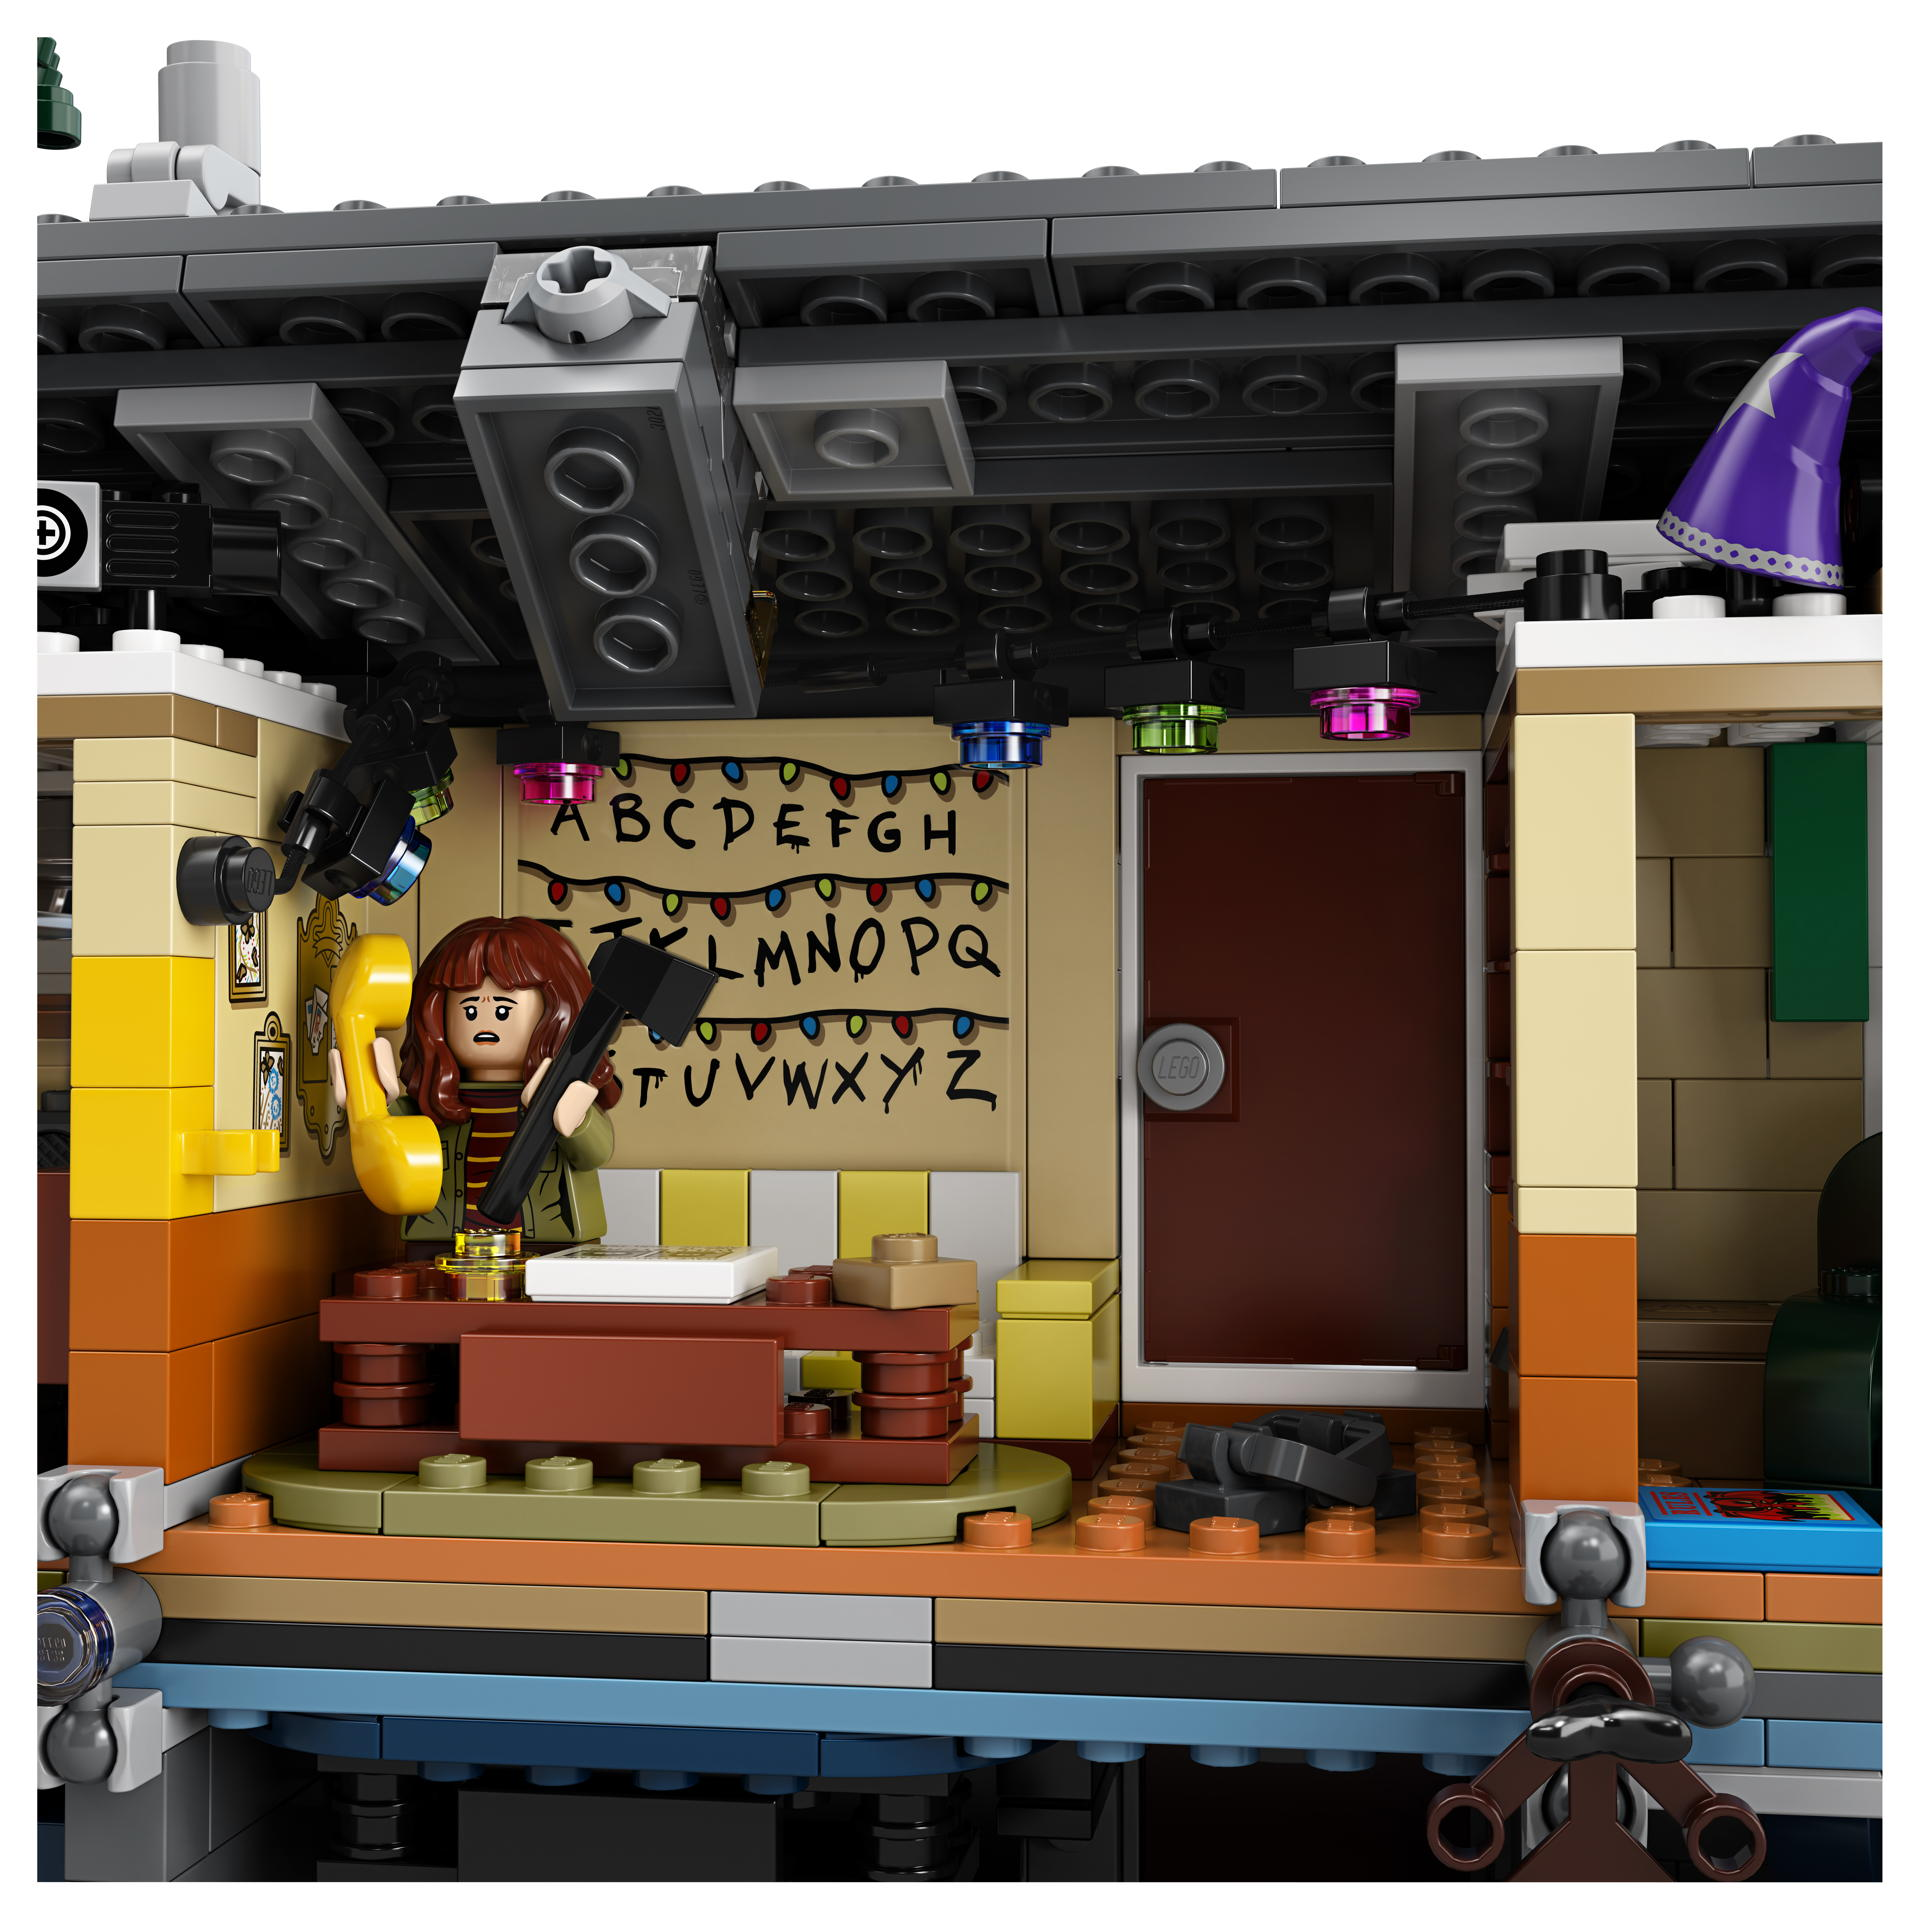 Lego Stranger Things playset goes deep into the Upside Down